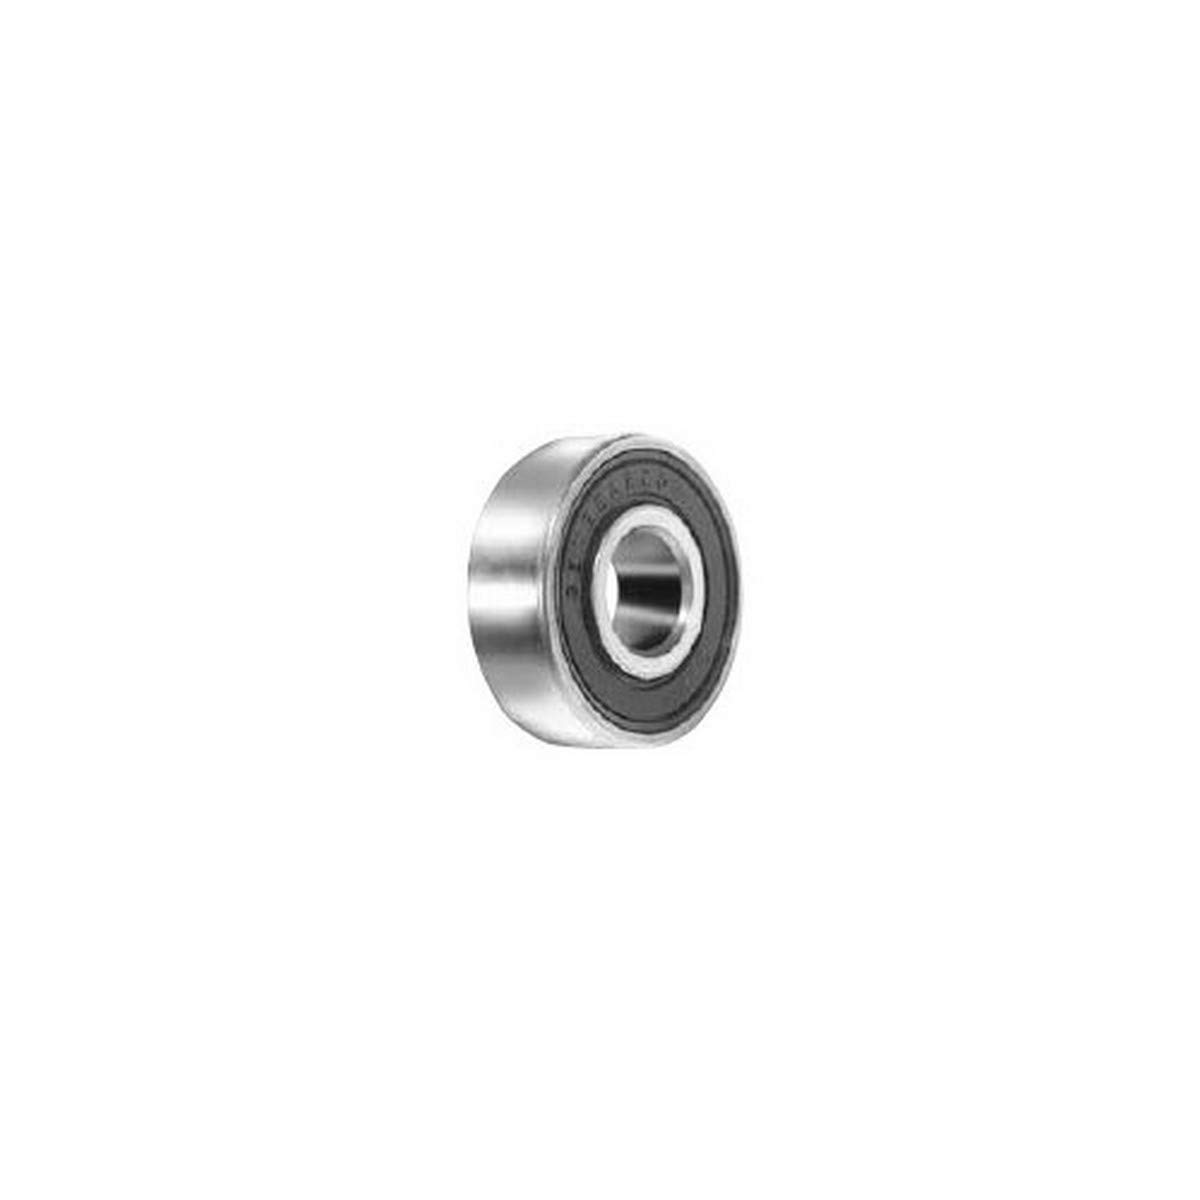 0.472 Outer Race Width 0.515 Round Bore Big Bearing 203KRR5 Special Ag Bearing 1.57 Flat Outside Diameter Metal 0.72 Inner Race Width